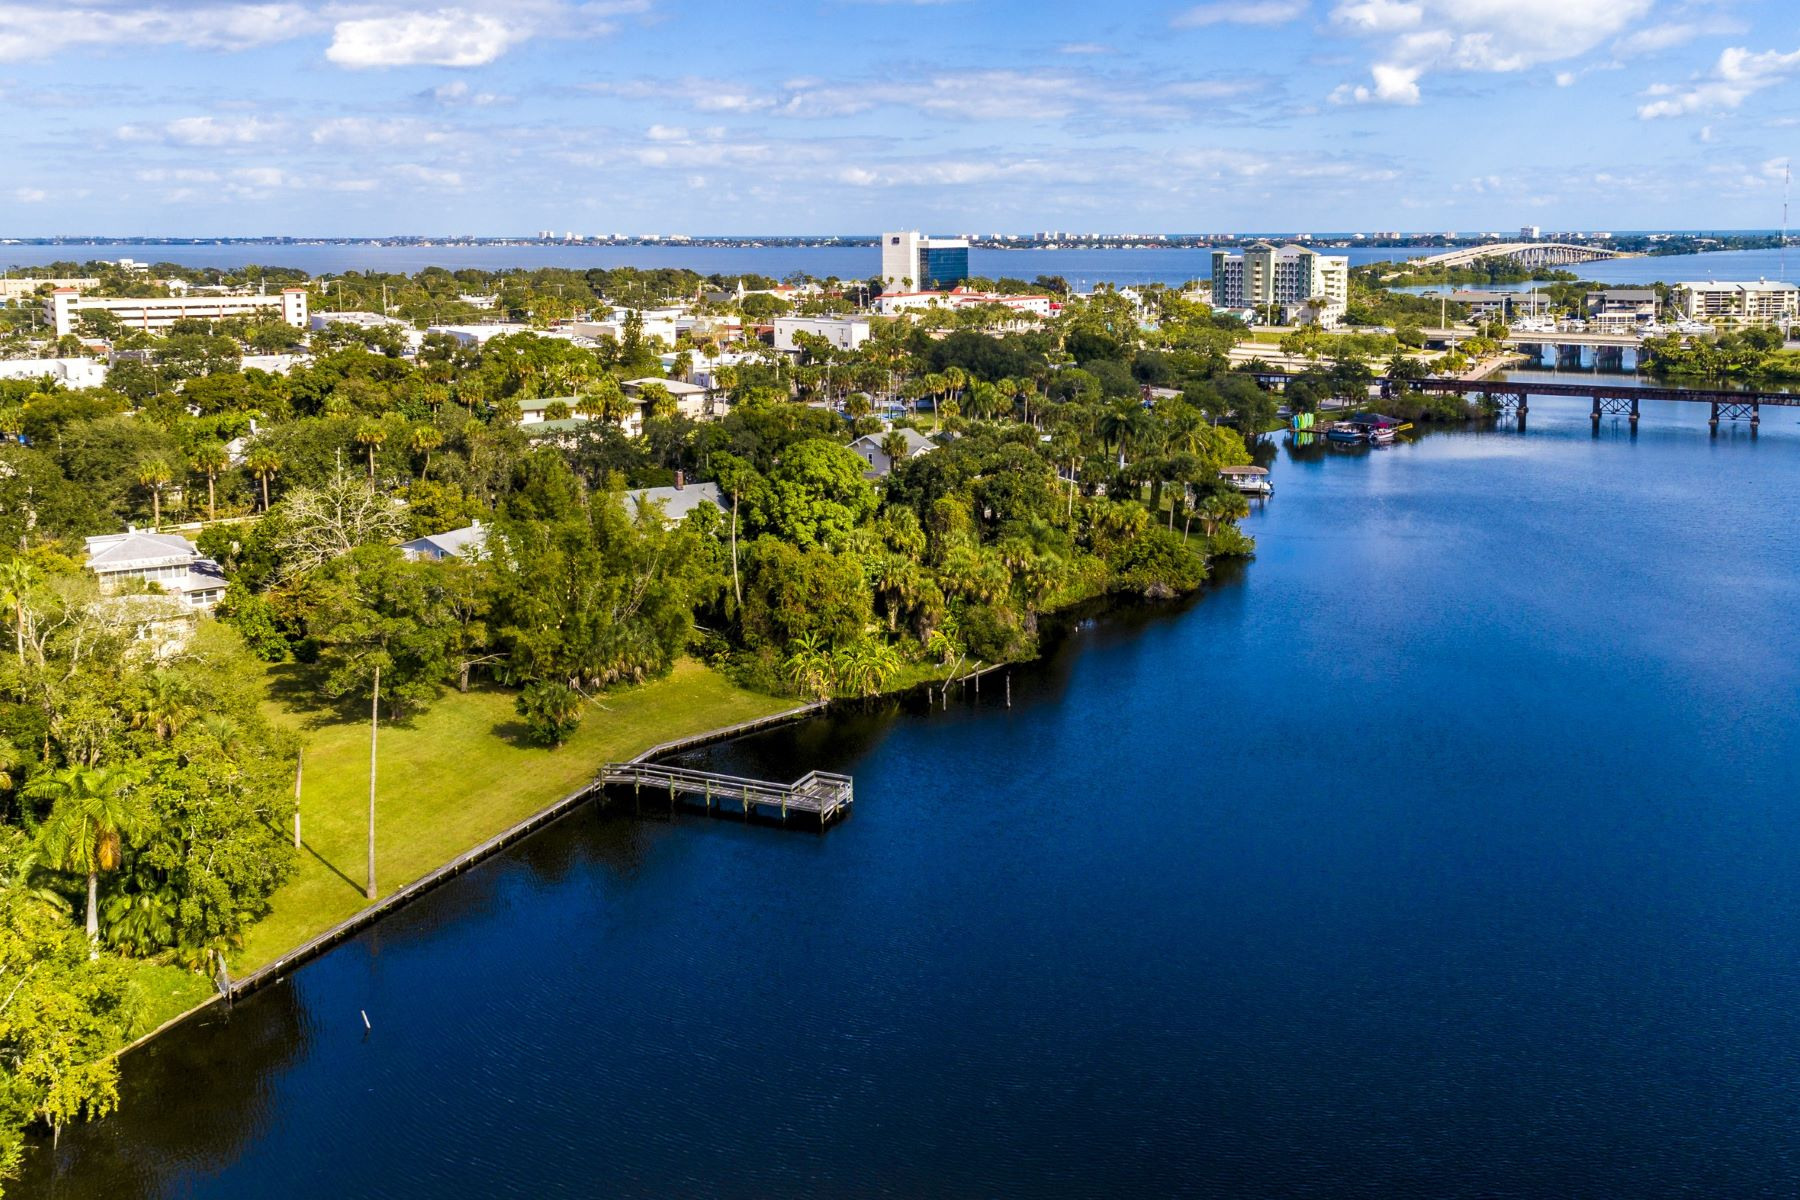 Two Waterfront Properties Being Sold Together! 819-823 E Melbourne Avenue Melbourne, Florida 32901 Hoa Kỳ